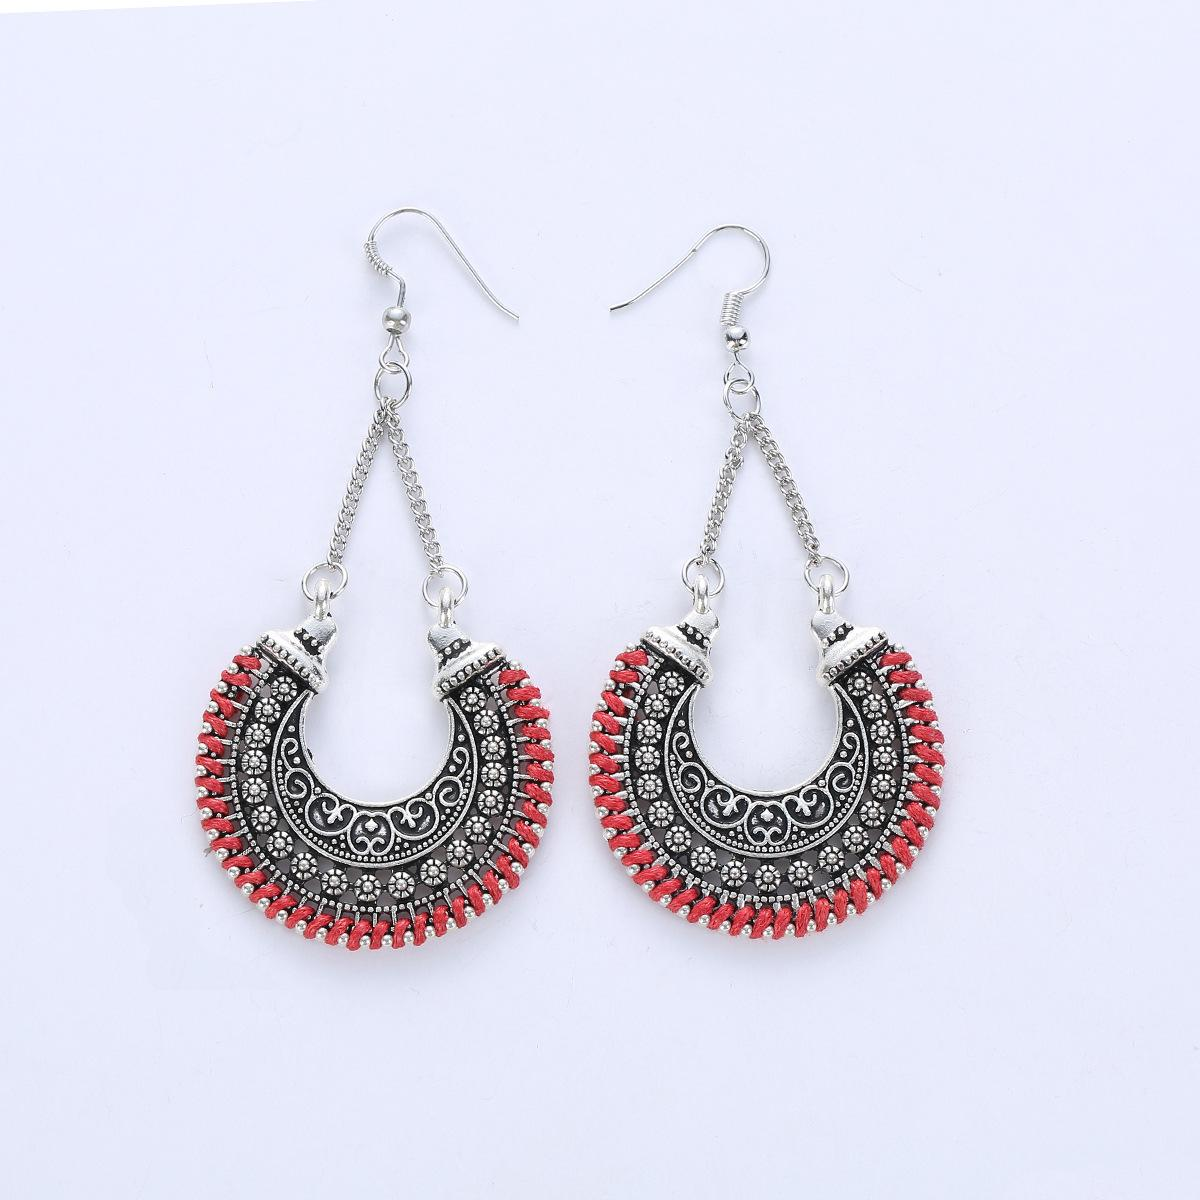 ed84e1546 2019 Fashion Retro Earring European And American Fashion Metal Hollow  Carved Crescent Basket Earrings Knitting Rope U Shaped Pendant From  Susanjoying, ...